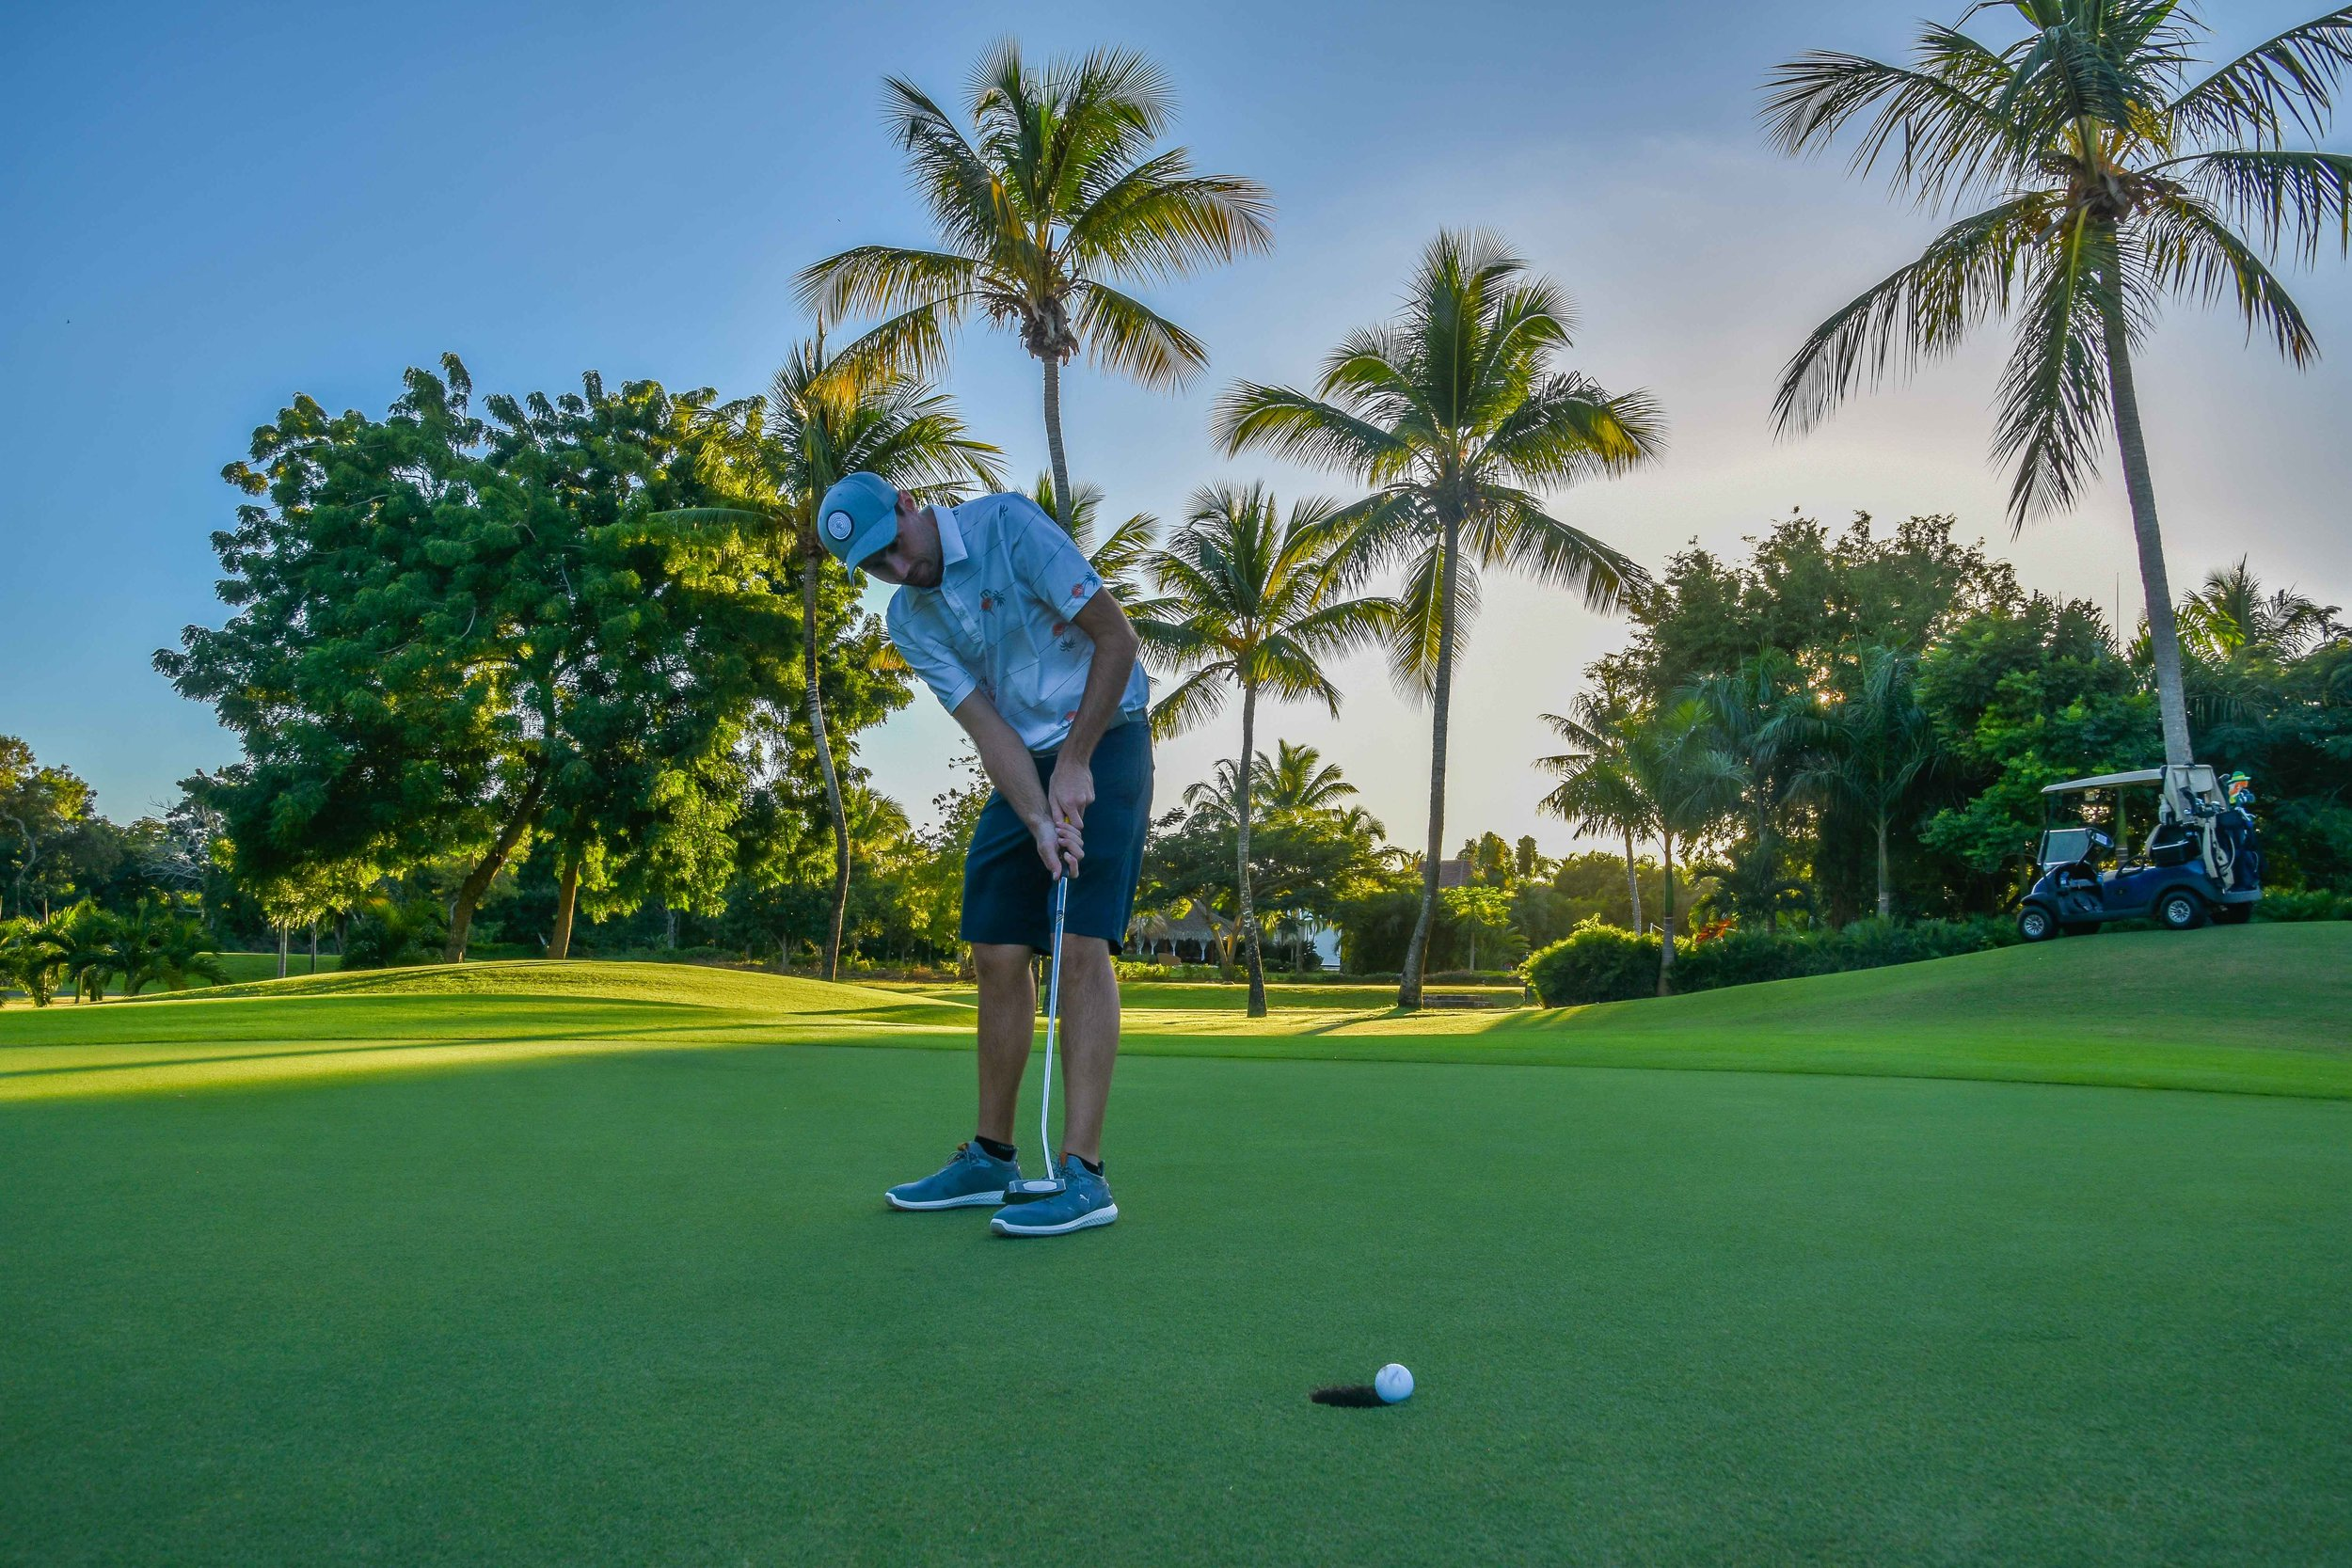 Aspring Golf model Tim Reilly attempts to find the back door on the par 4 14th at La Romana Country Club.